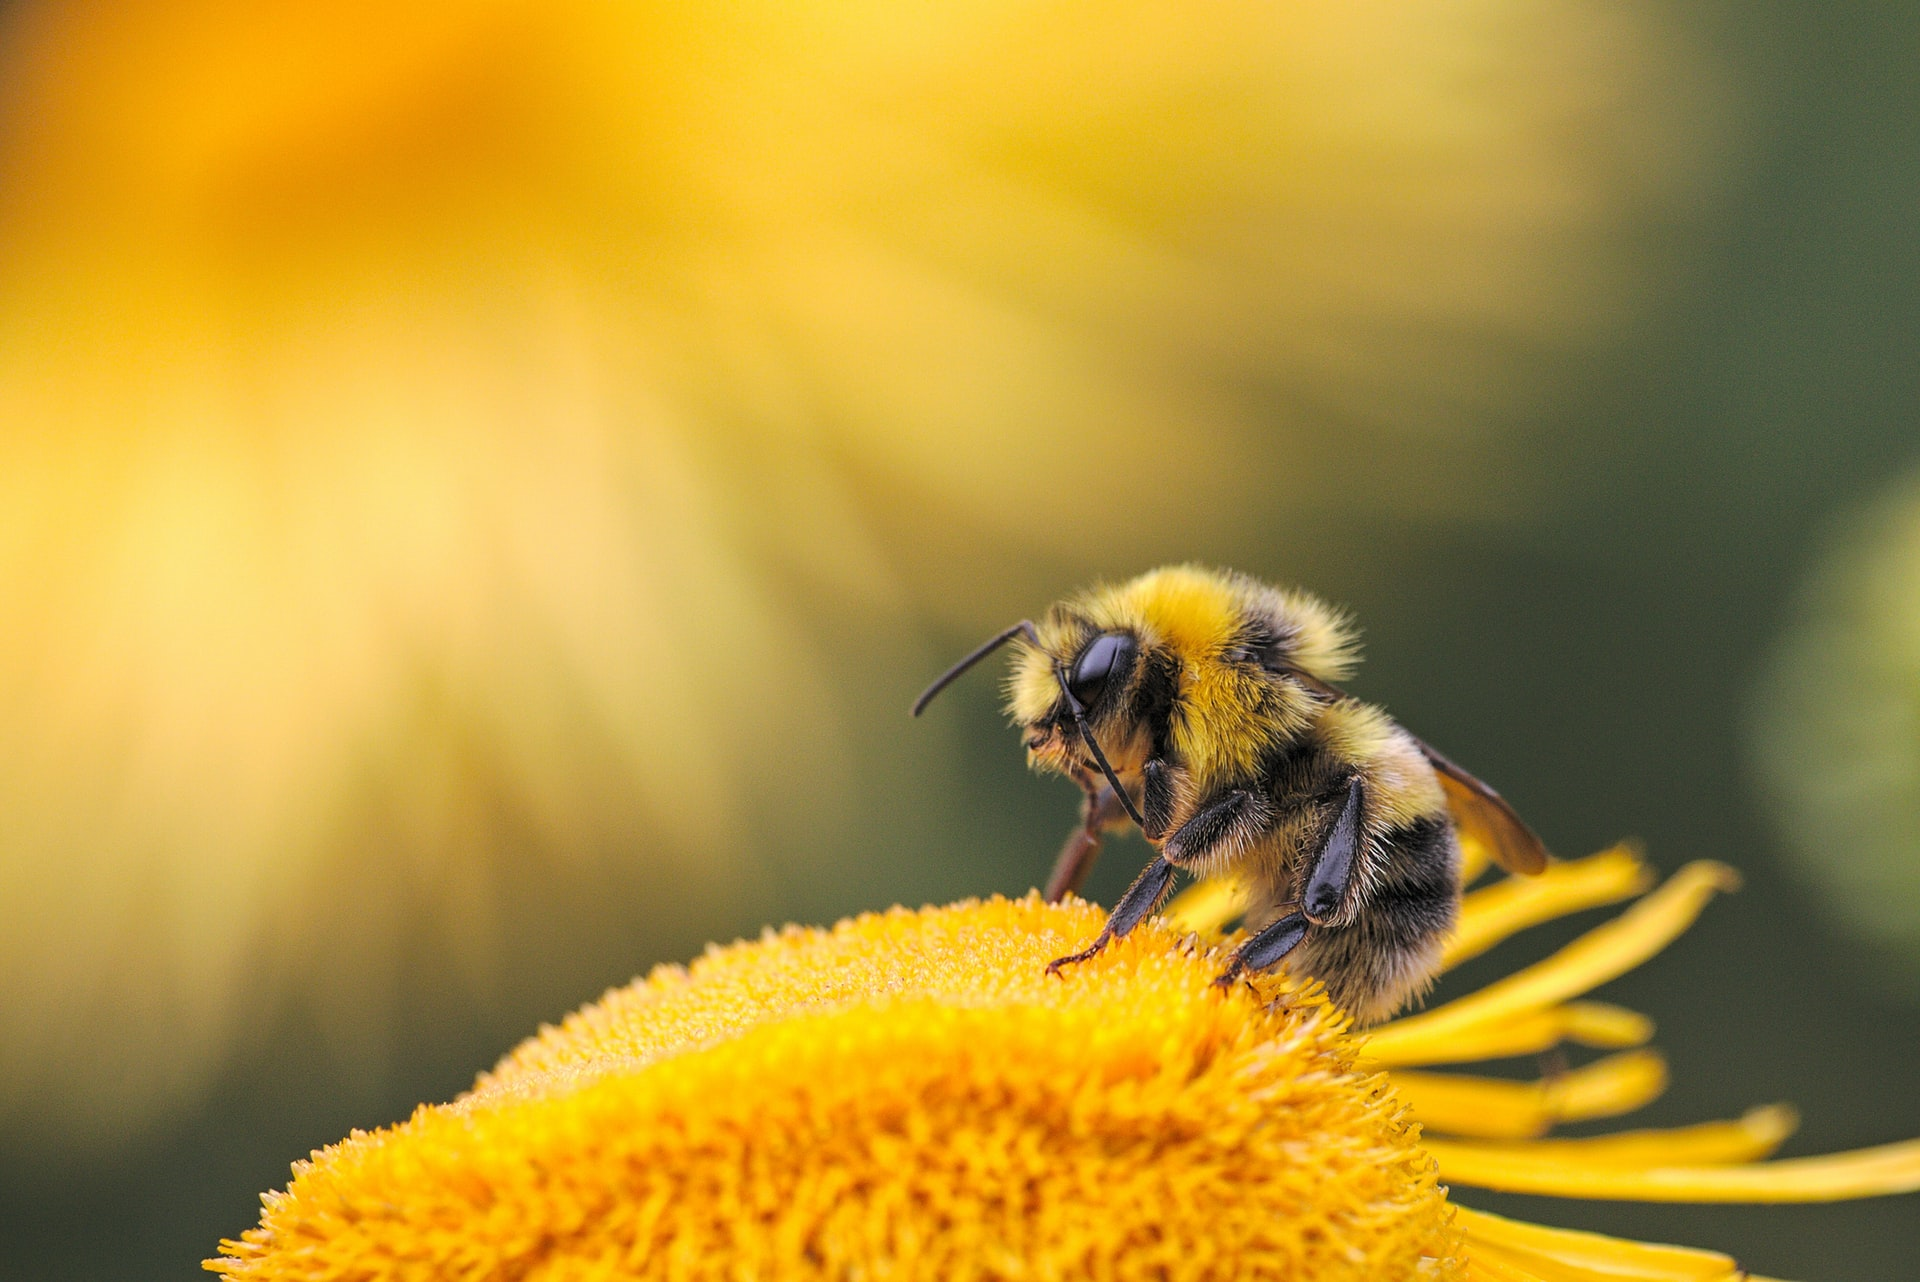 American Bumblebee Could Be Added to the Endangered Species List